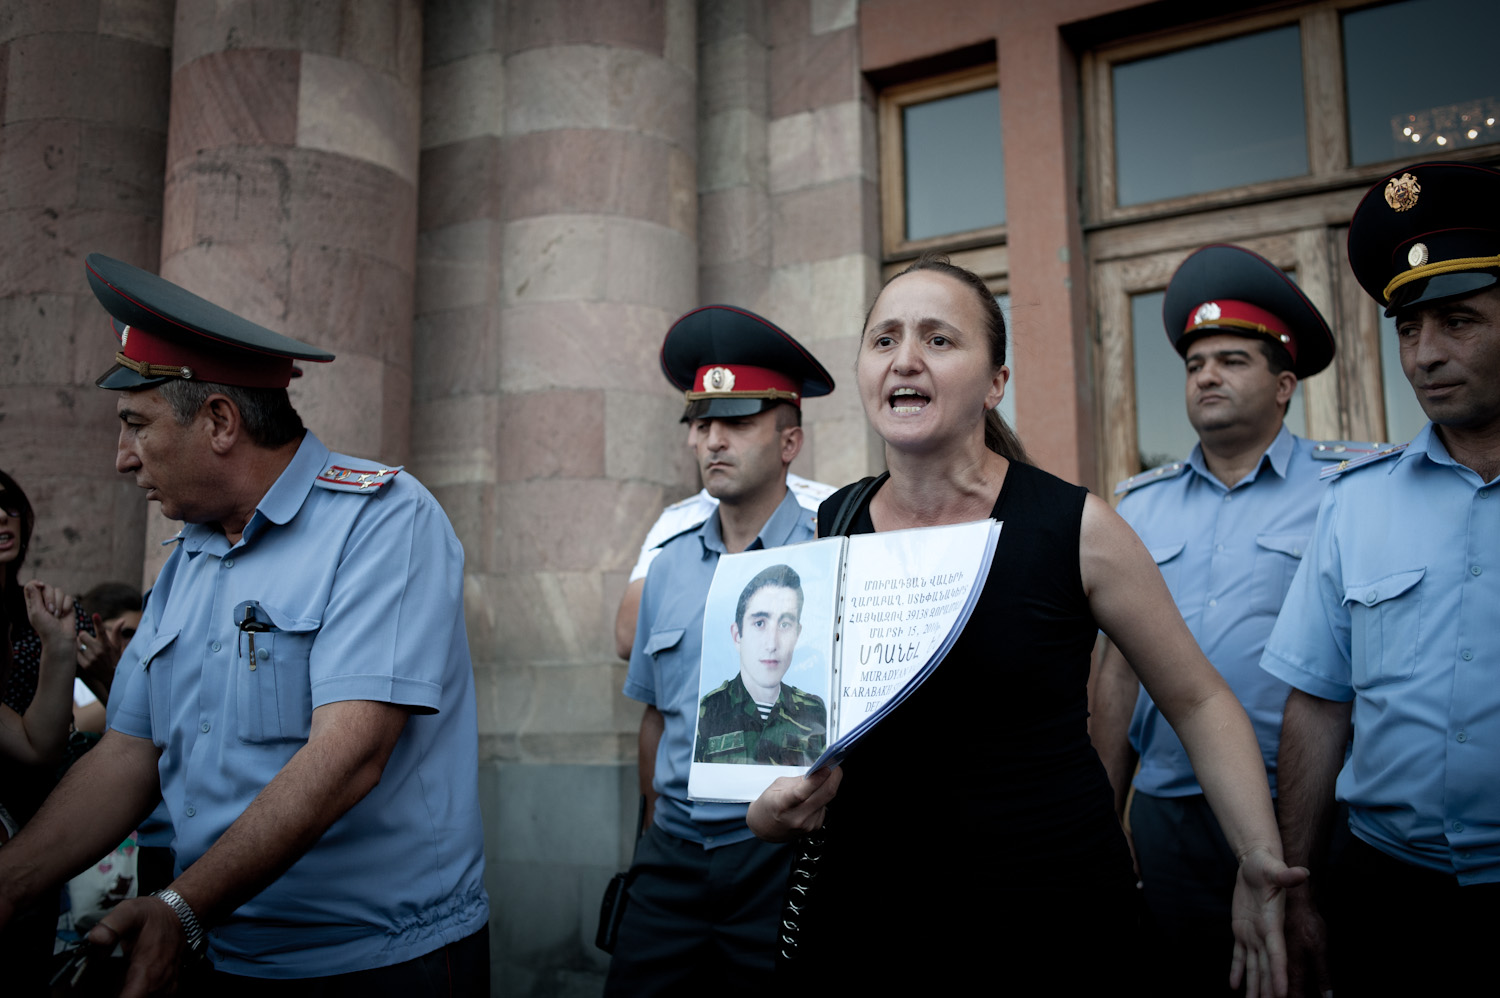 """No military personnel have been held responsible for Valery's death. Nana and her family continue to seek justice: """"If all the mothers whose sons have died like this join us, we would fill this entire square with mothers in black."""""""